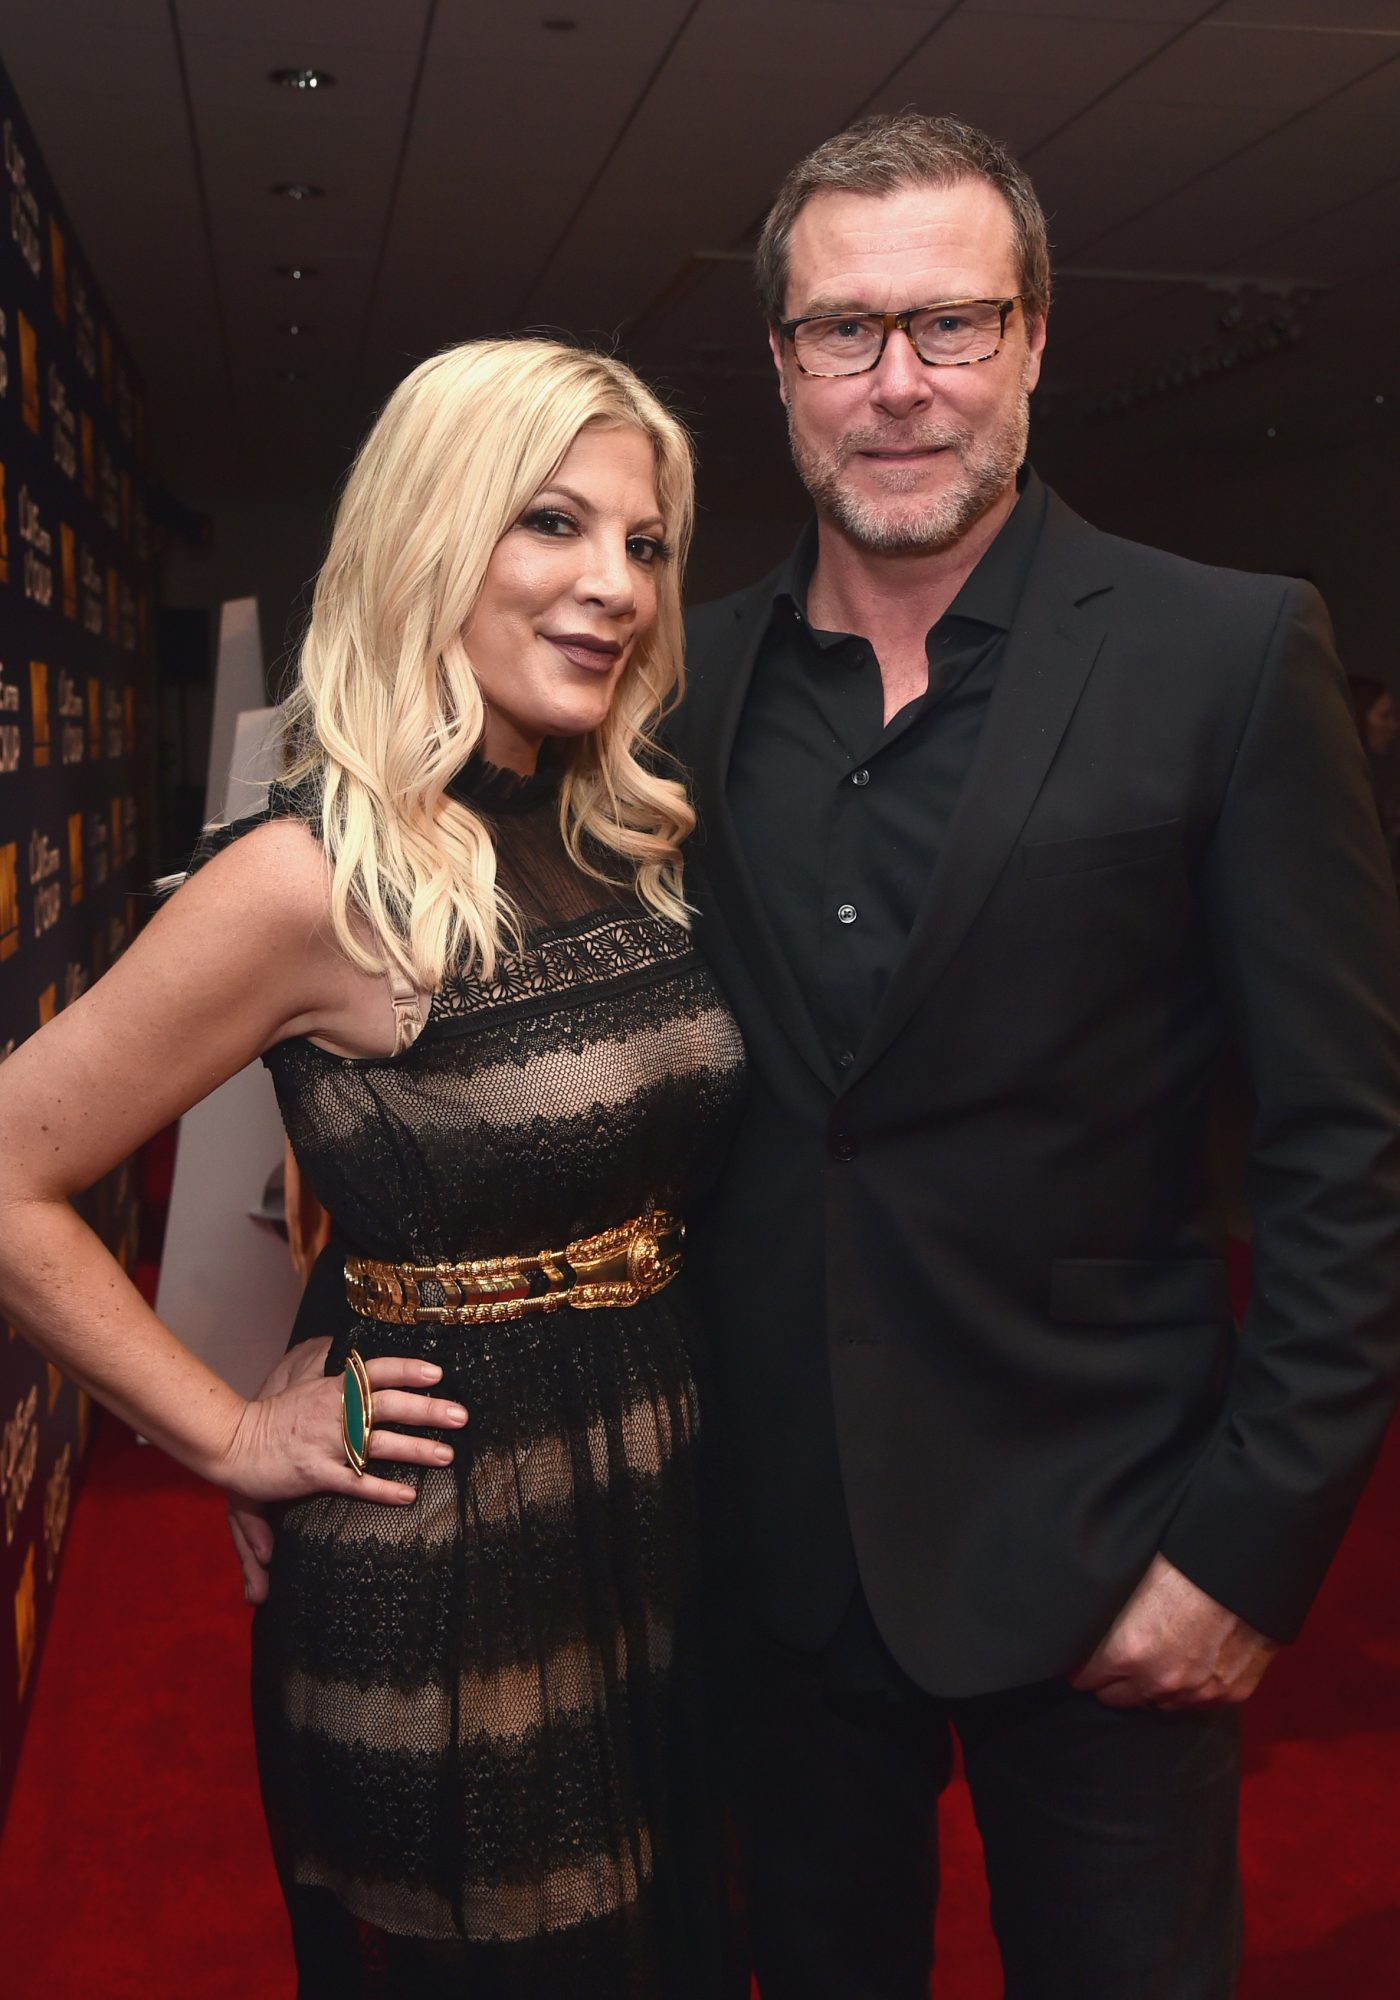 Dean McDermott Slams 'Coward' Internet 'Trolls' Criticizing Wife Tori Spelling's Bikini Photo